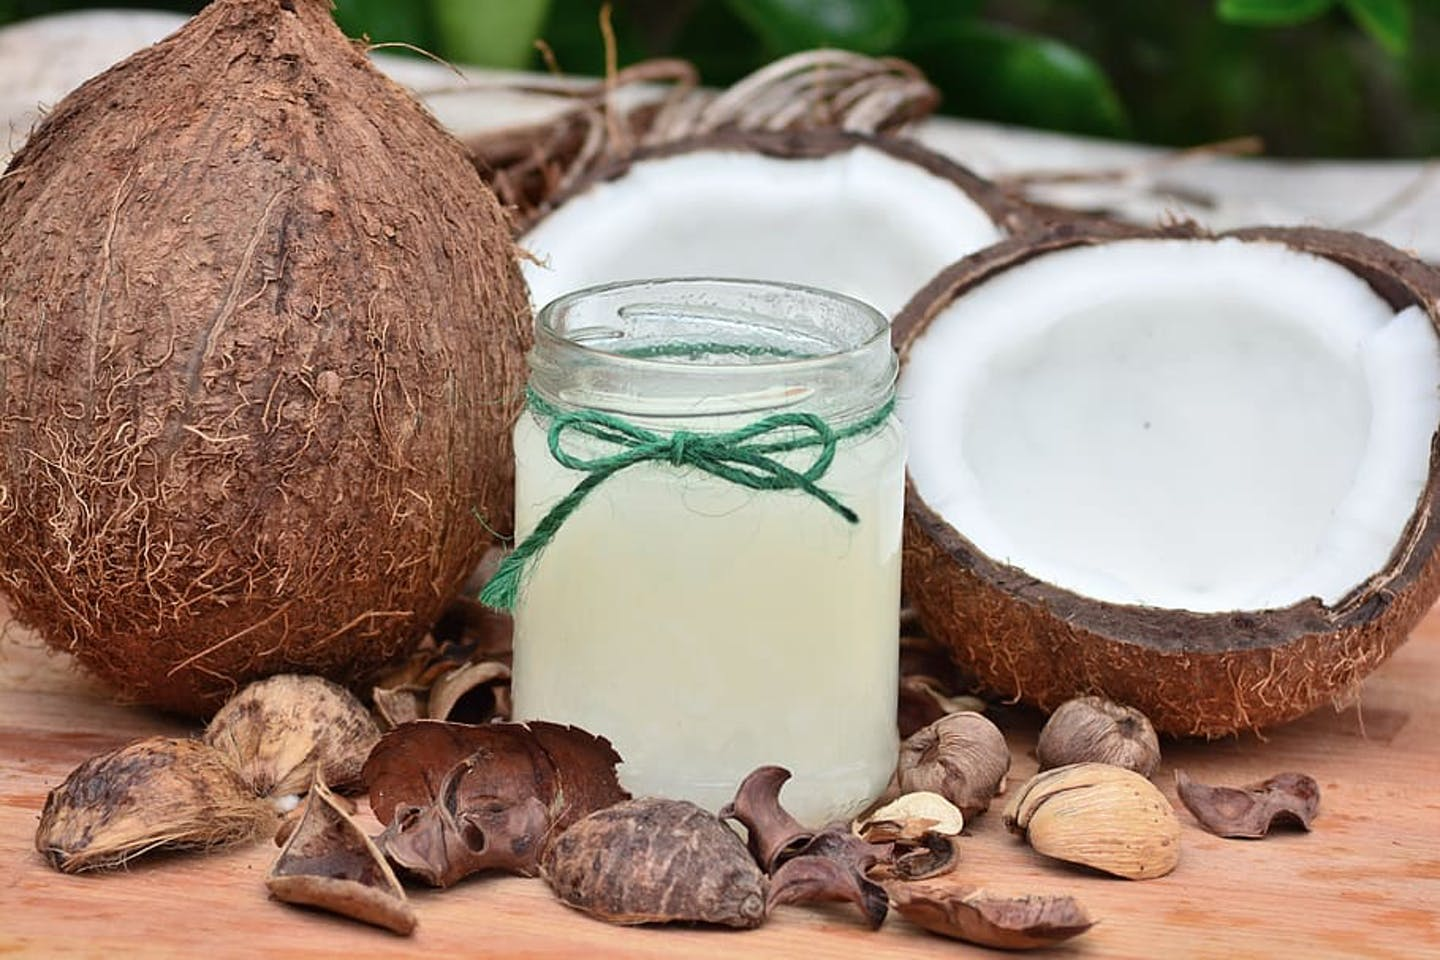 coconut fruit production more harmful